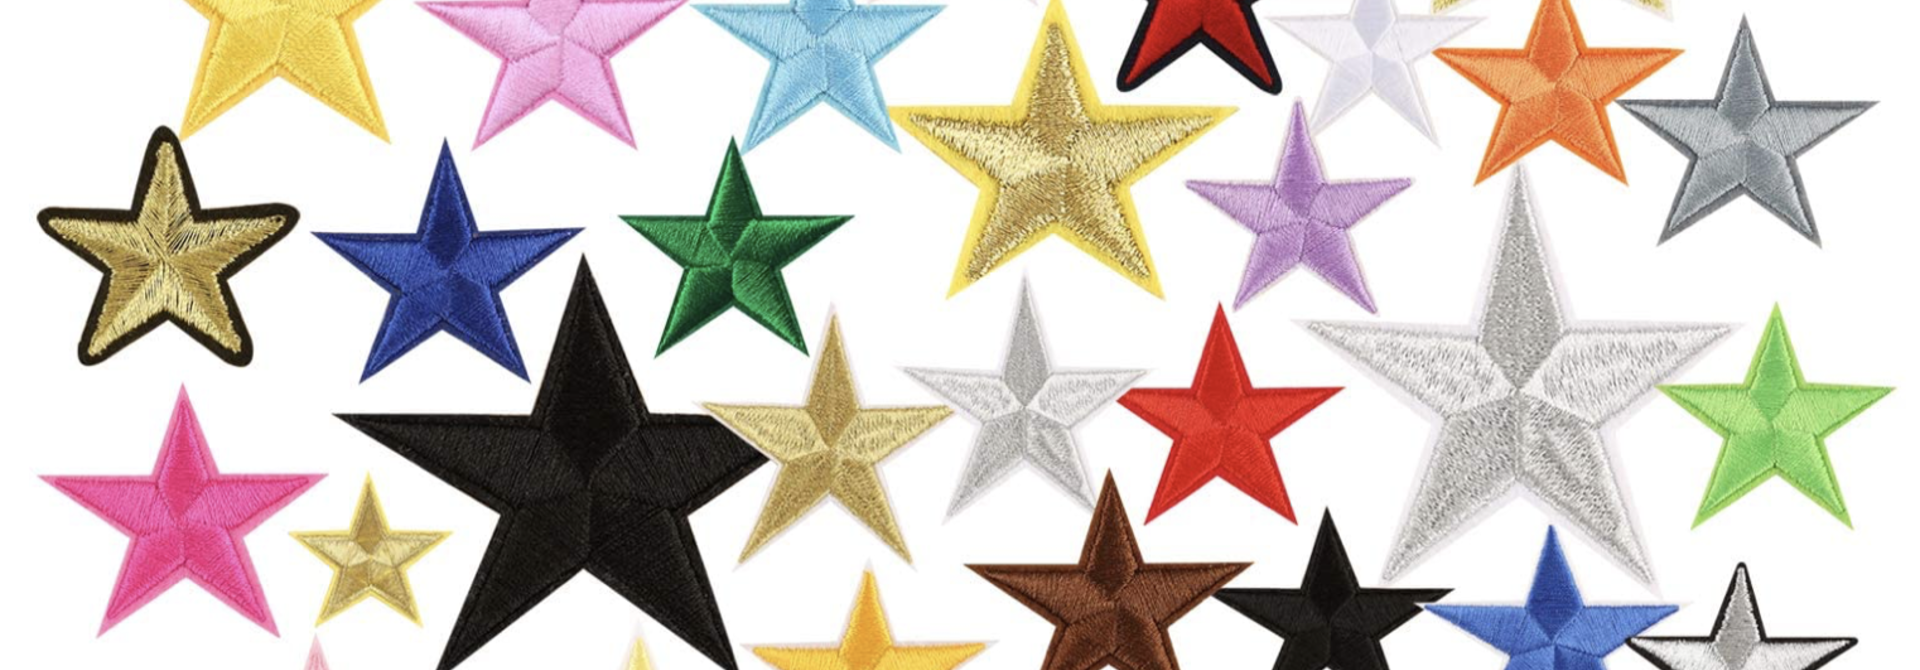 THE SHOP STARS PATCH LARGE